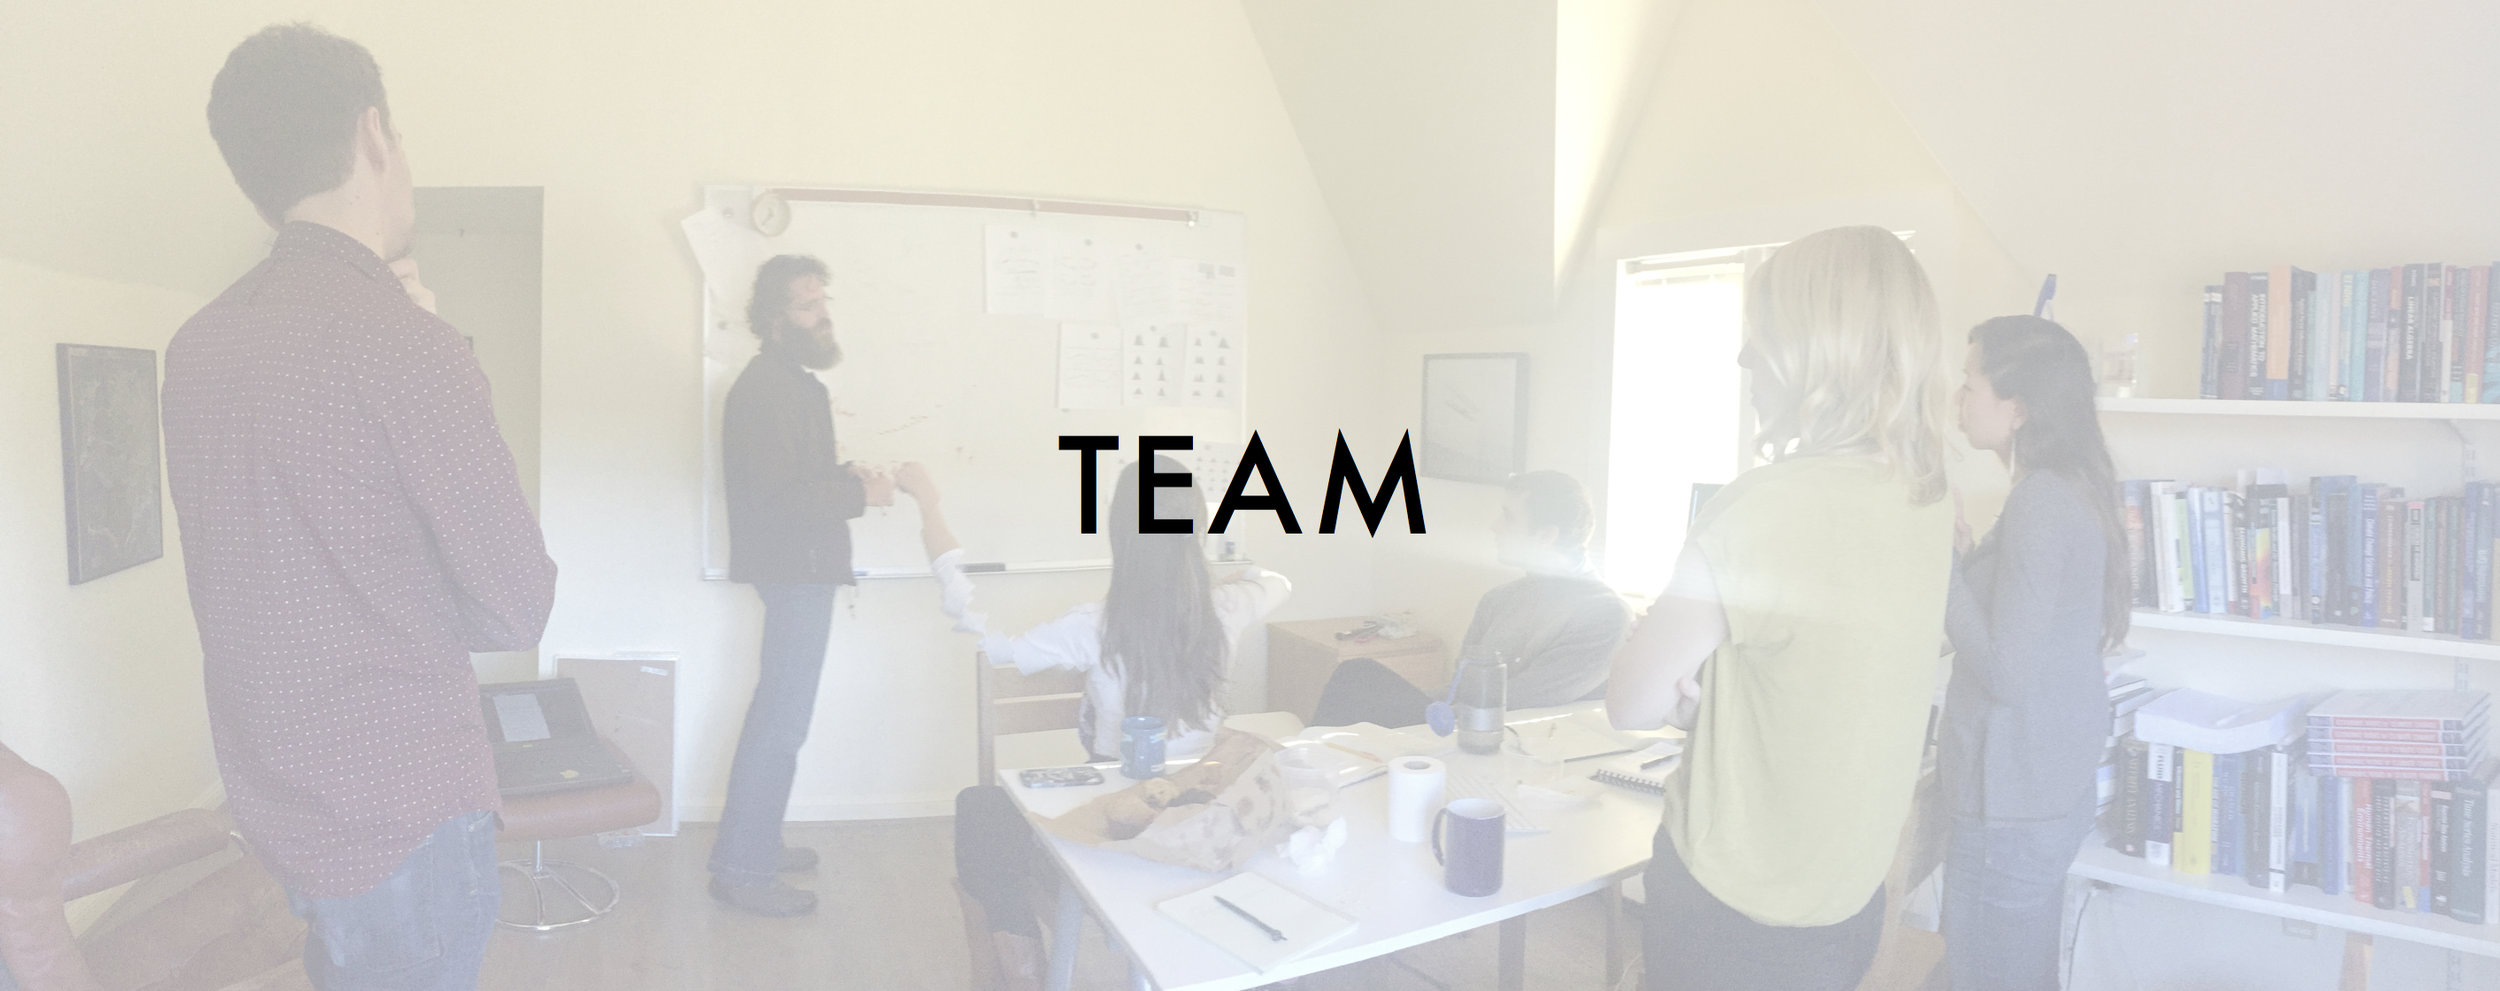 Global_Policy_lab_team